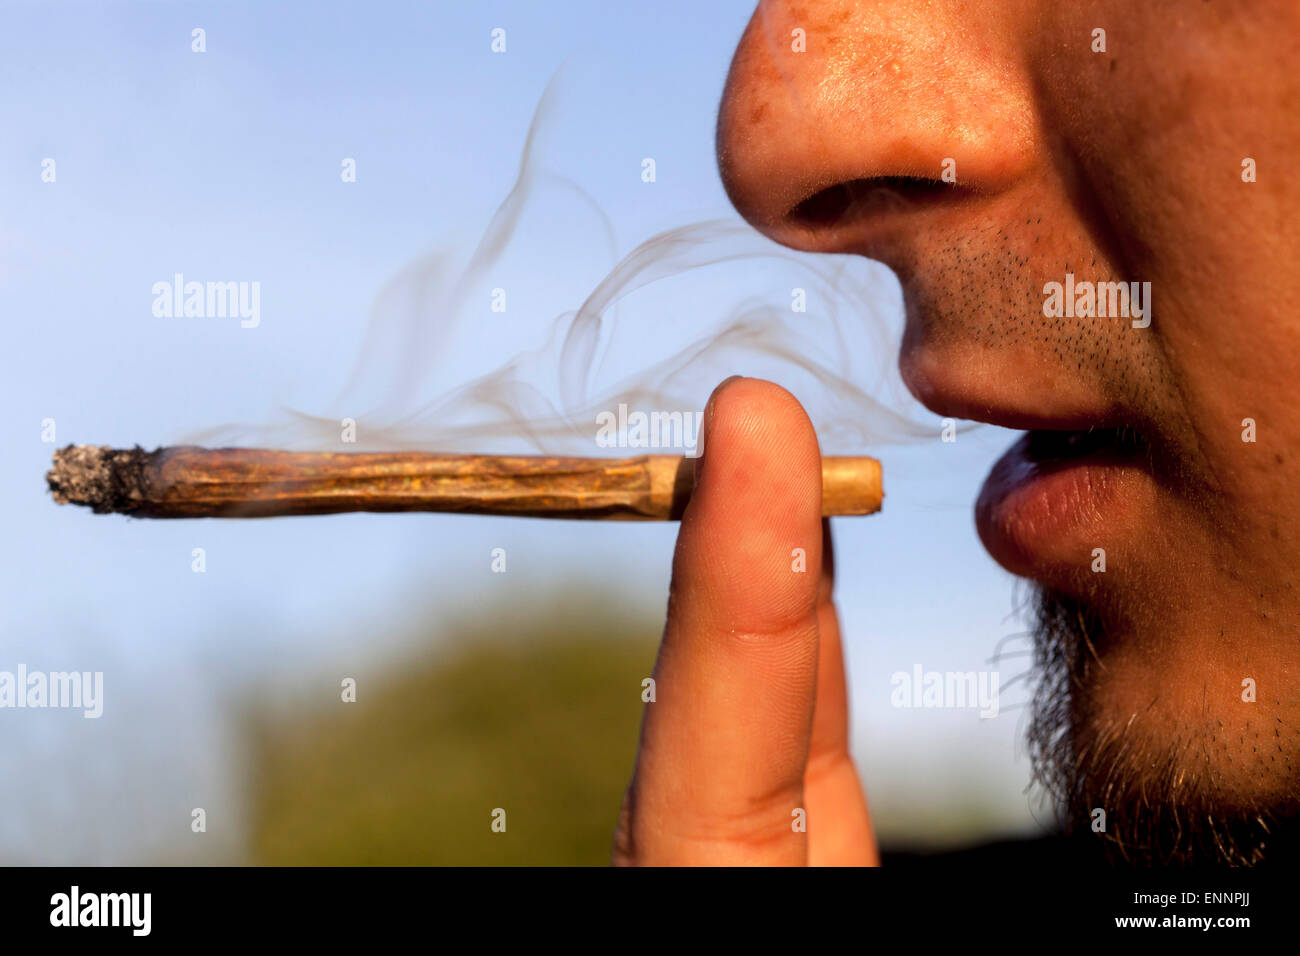 Close up, man smoking marijuana joint - Stock Image